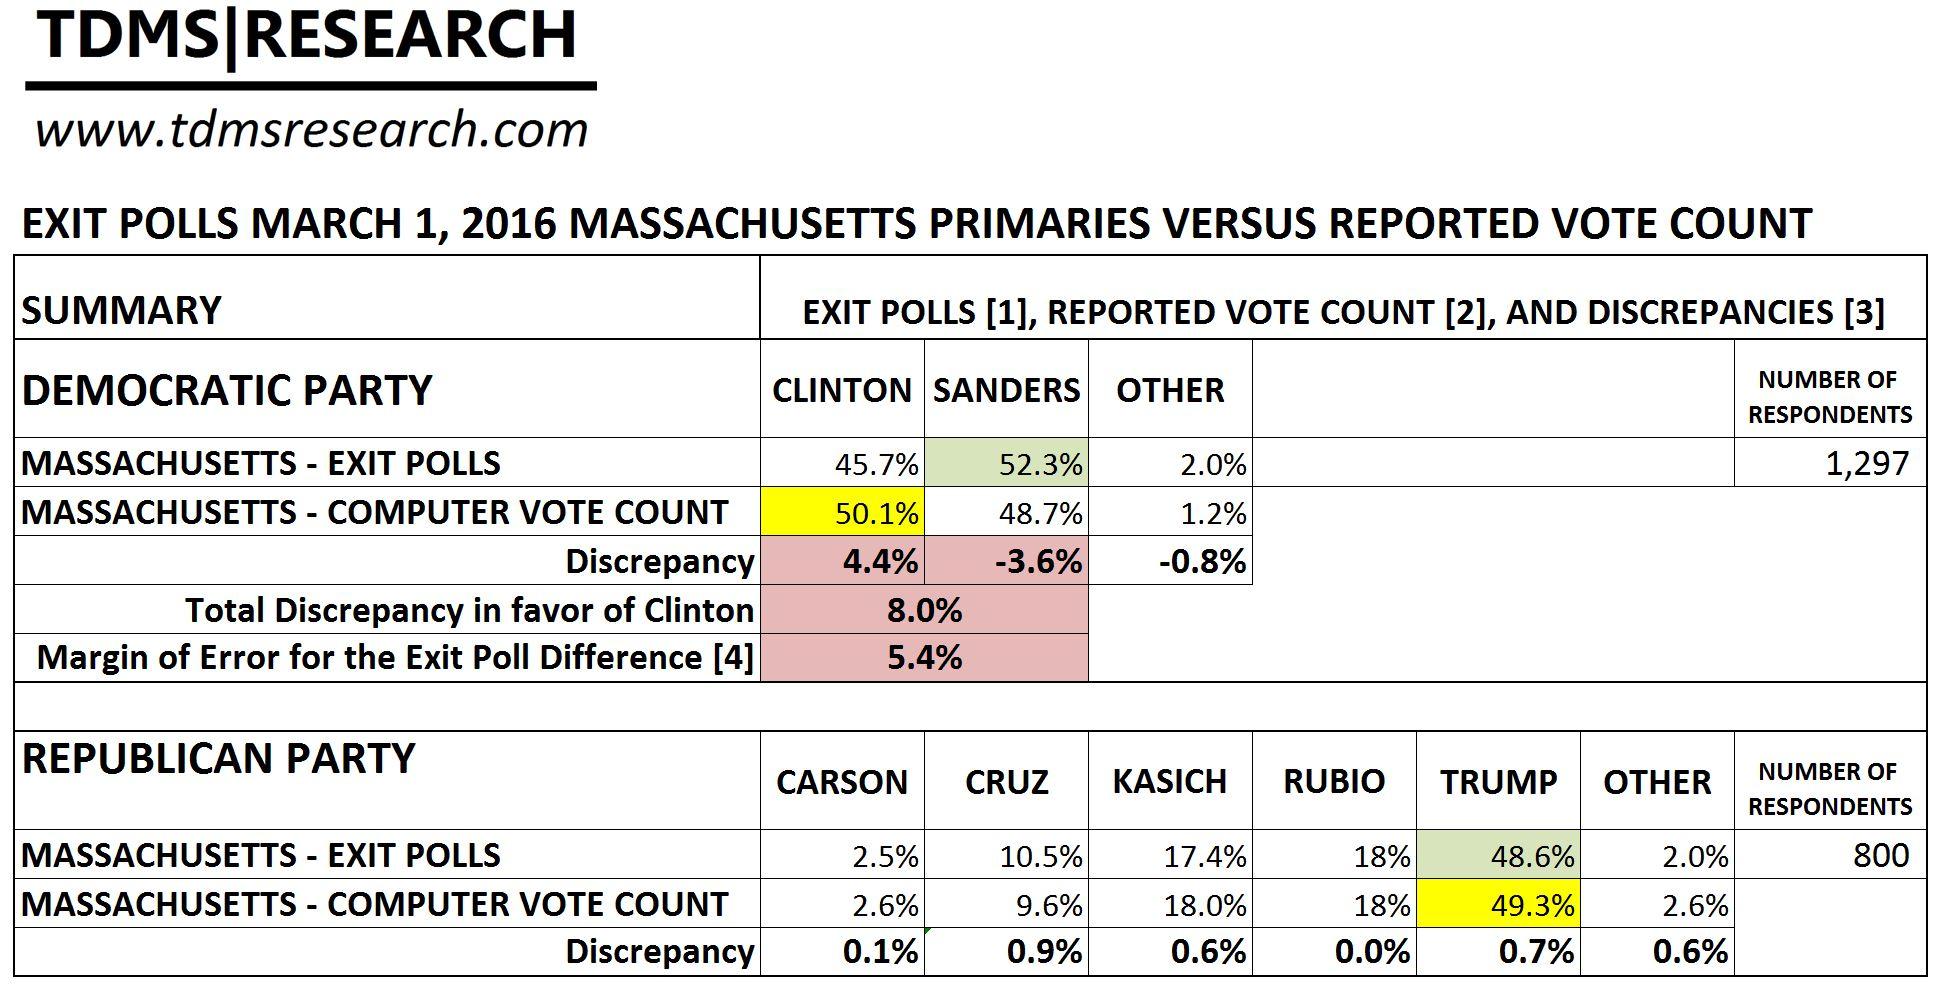 Ballot Counting Spreadsheet Pertaining To The Suspect Massachusetts 2016 Primary – Tdmsresearch